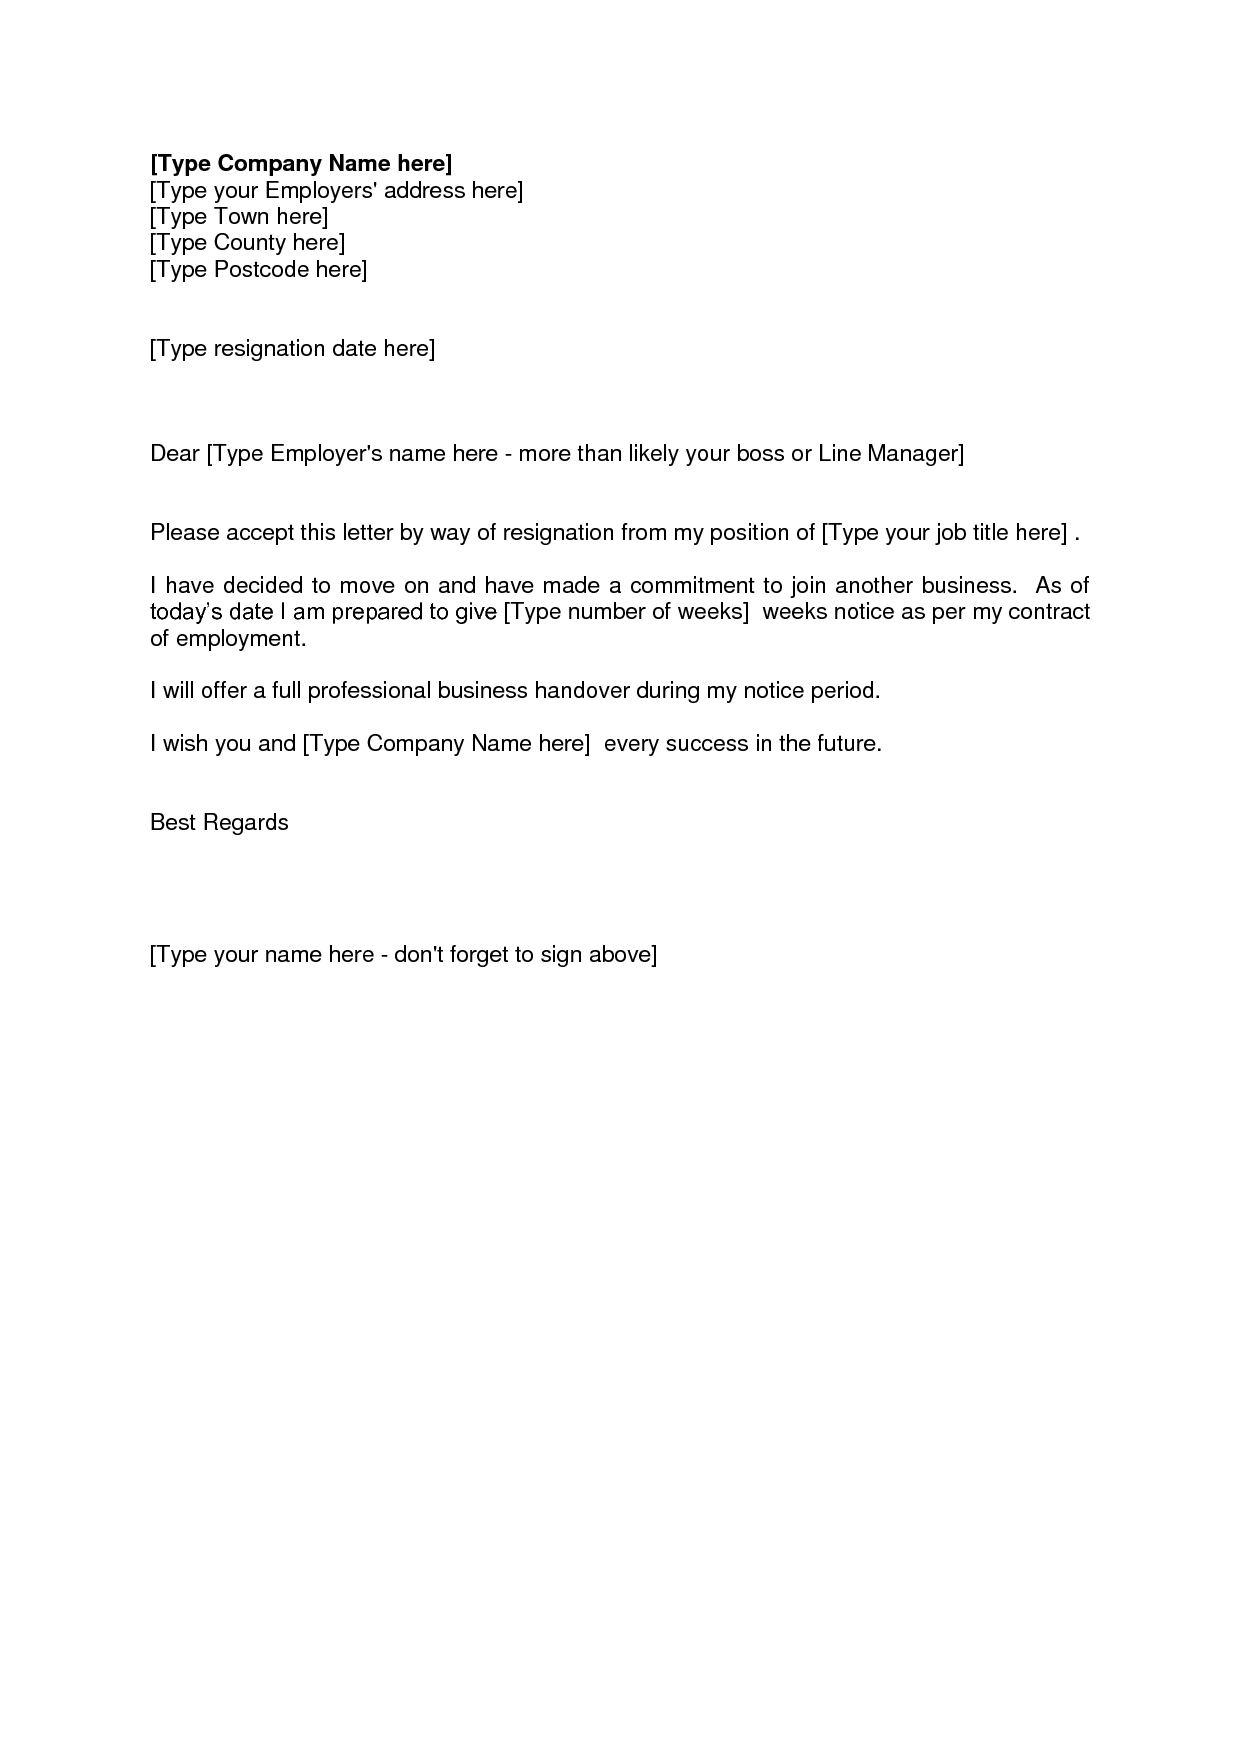 Letter Of Resignation Weeks Notice